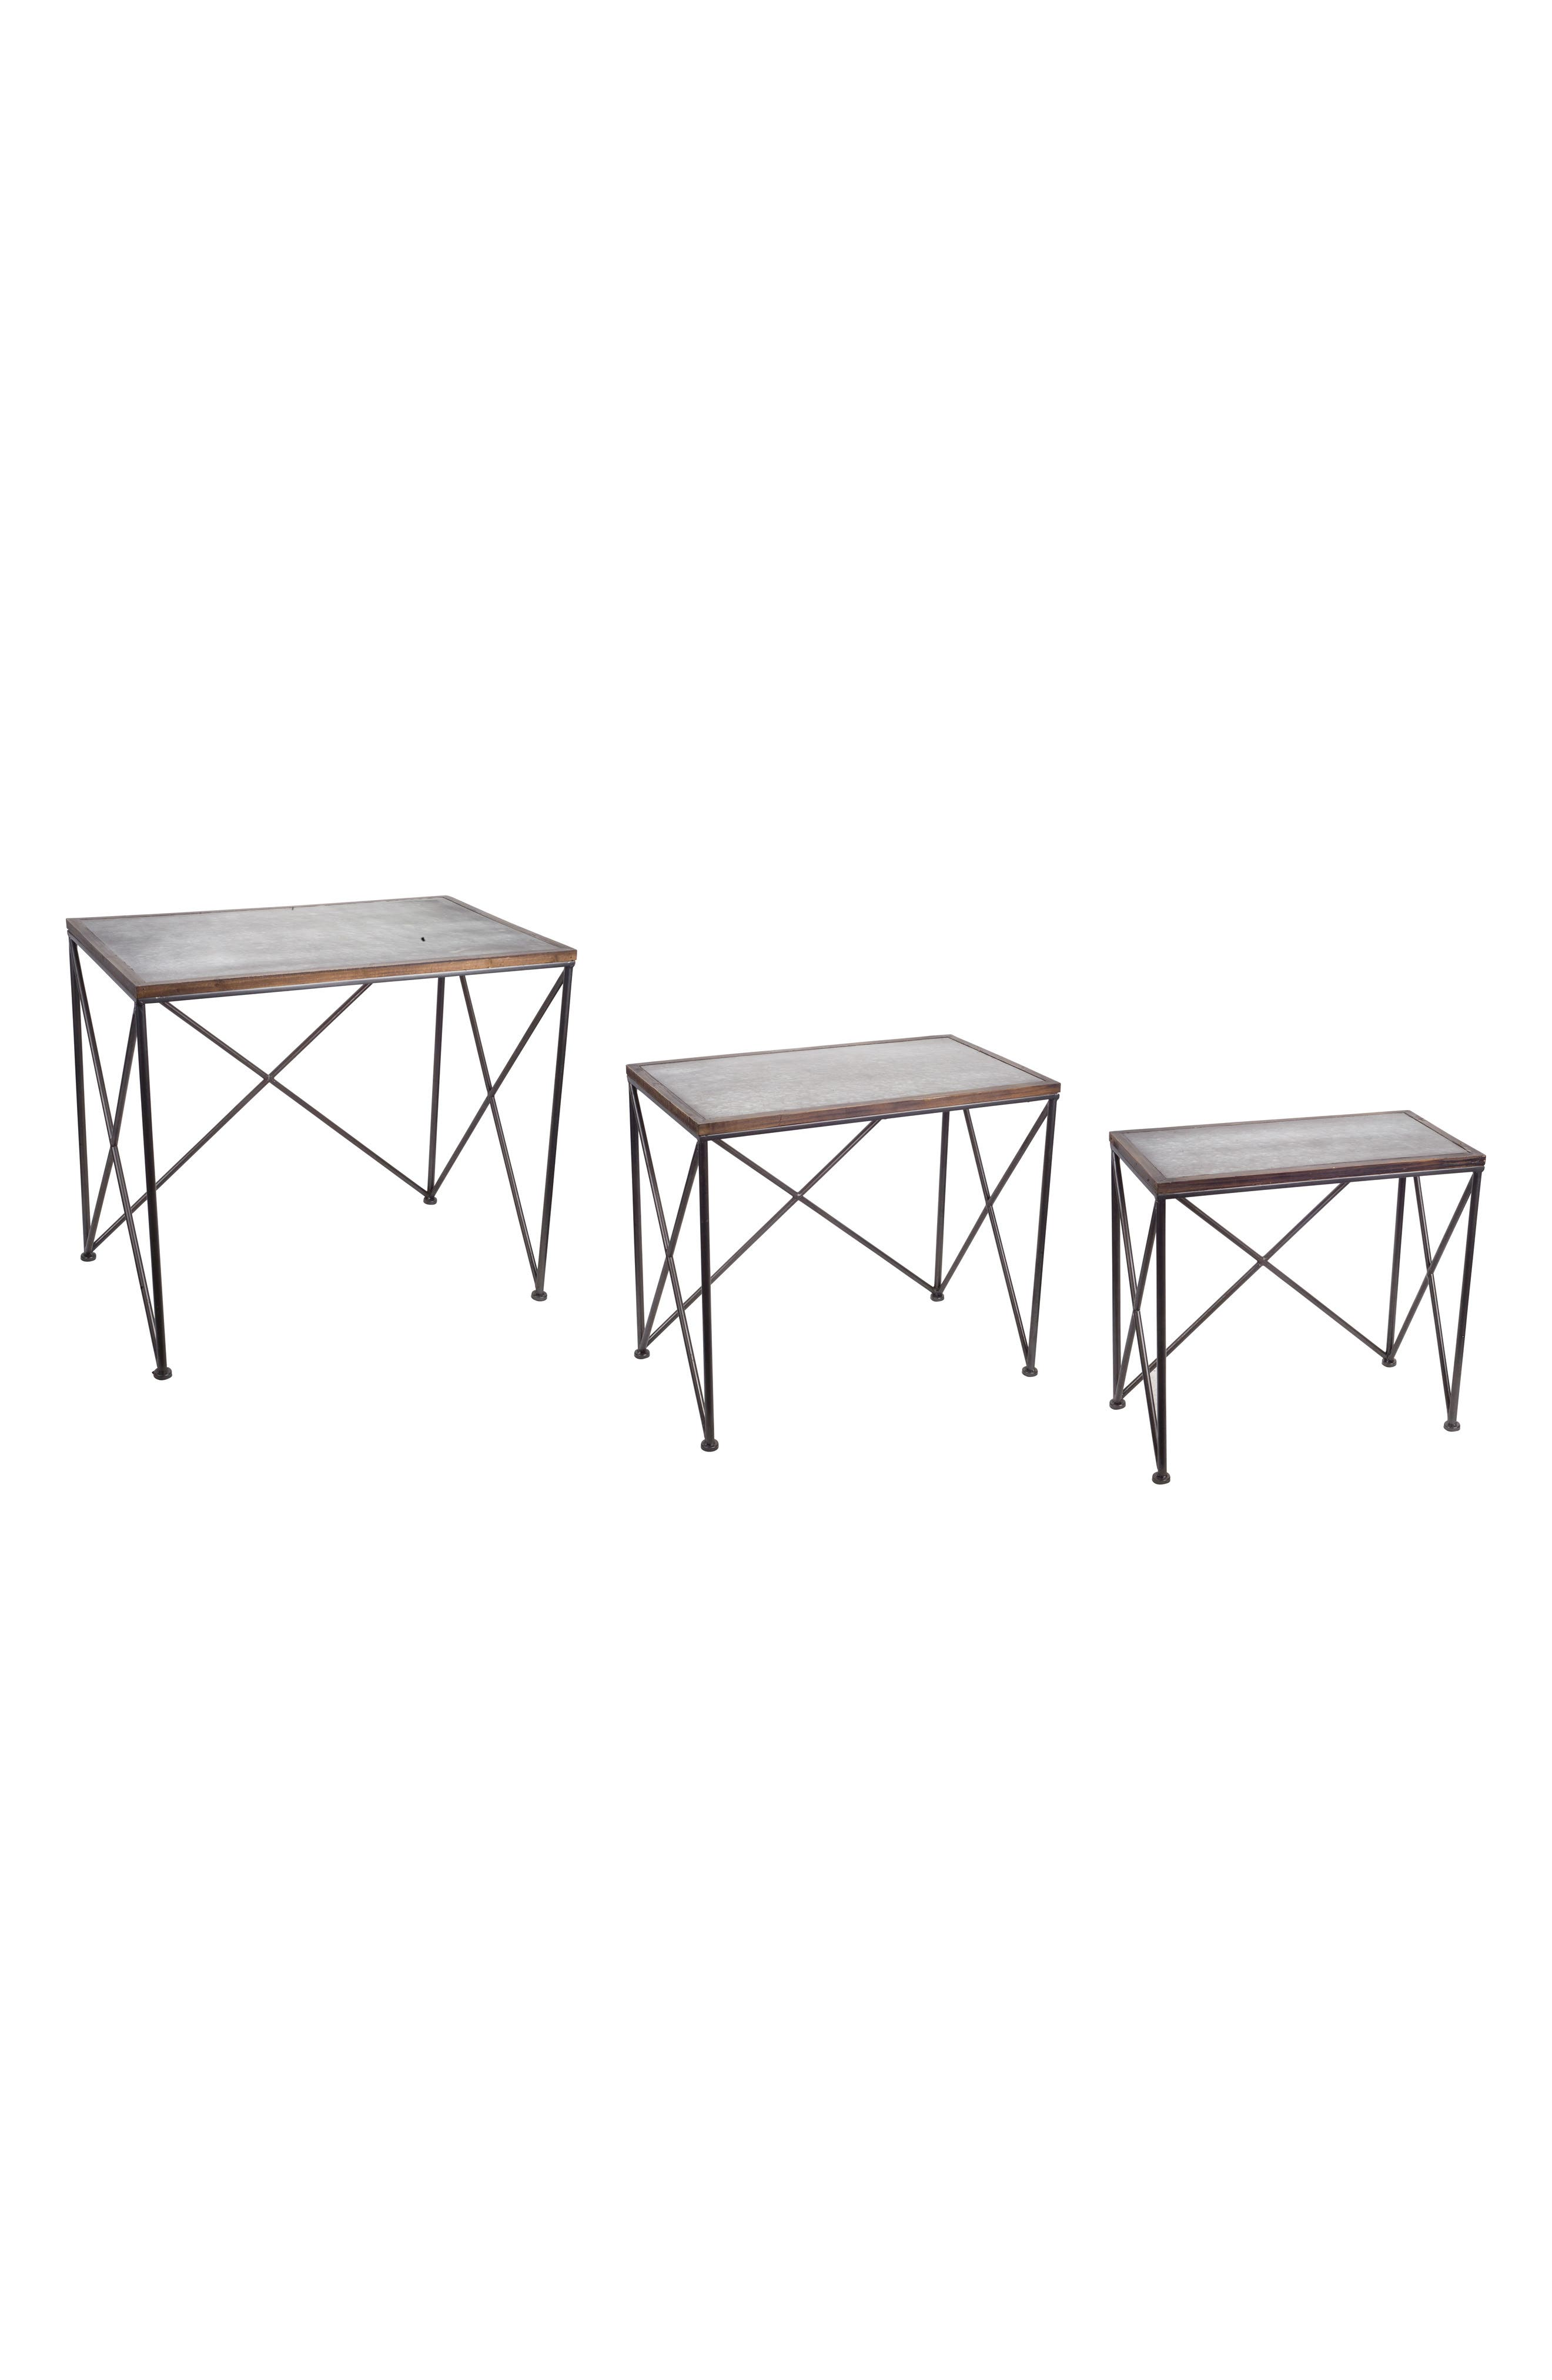 Set of 3 Accent Tables,                             Main thumbnail 1, color,                             Brown